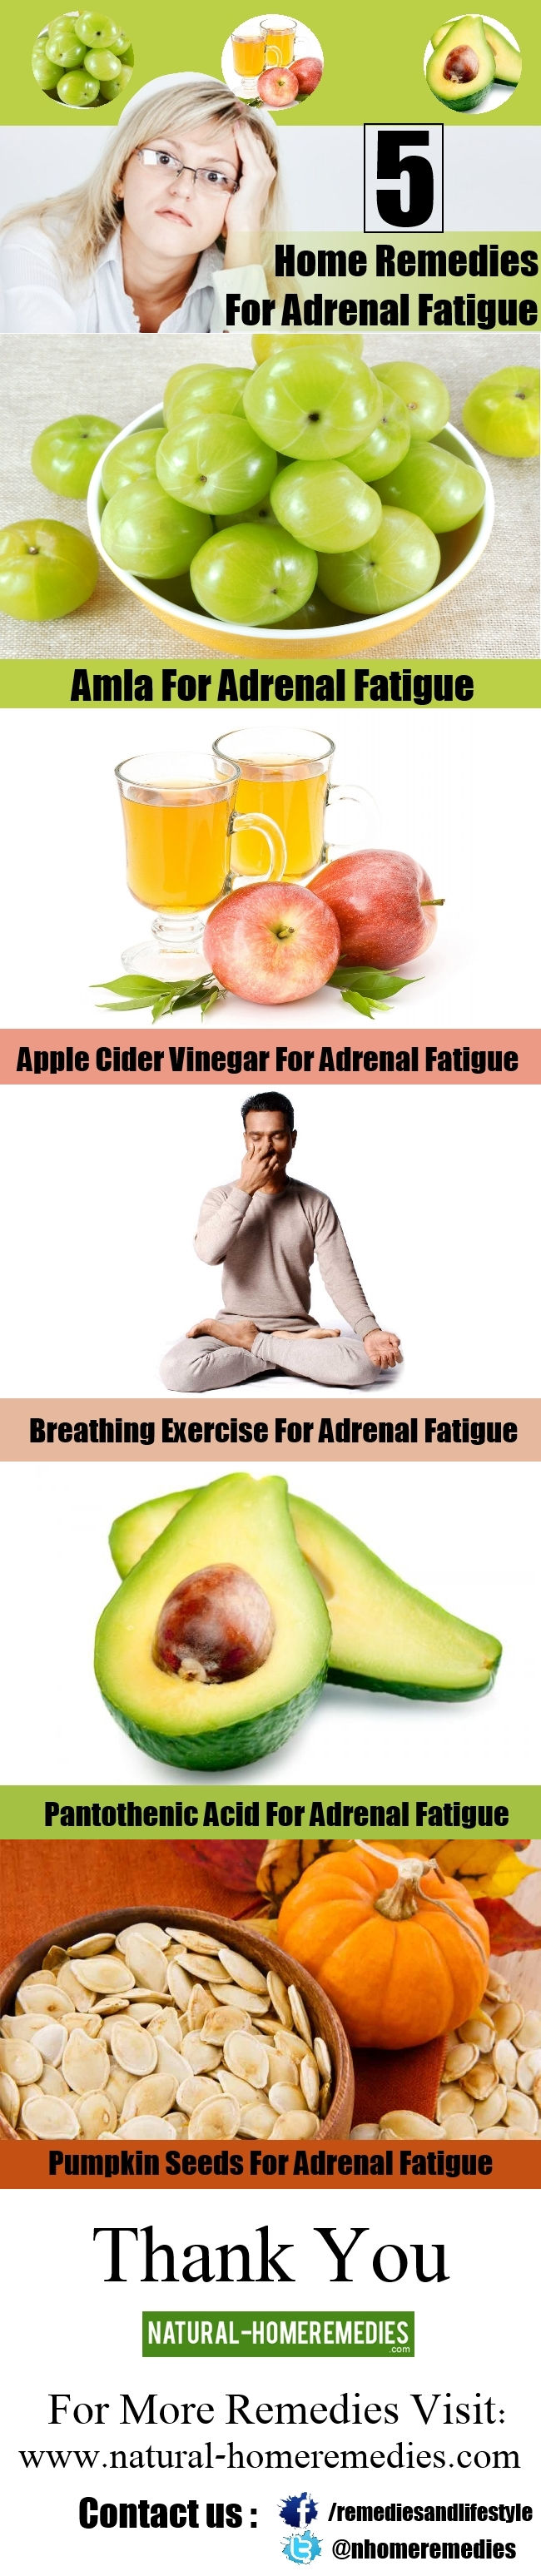 5 Home Remedies For Adrenal Fatigue